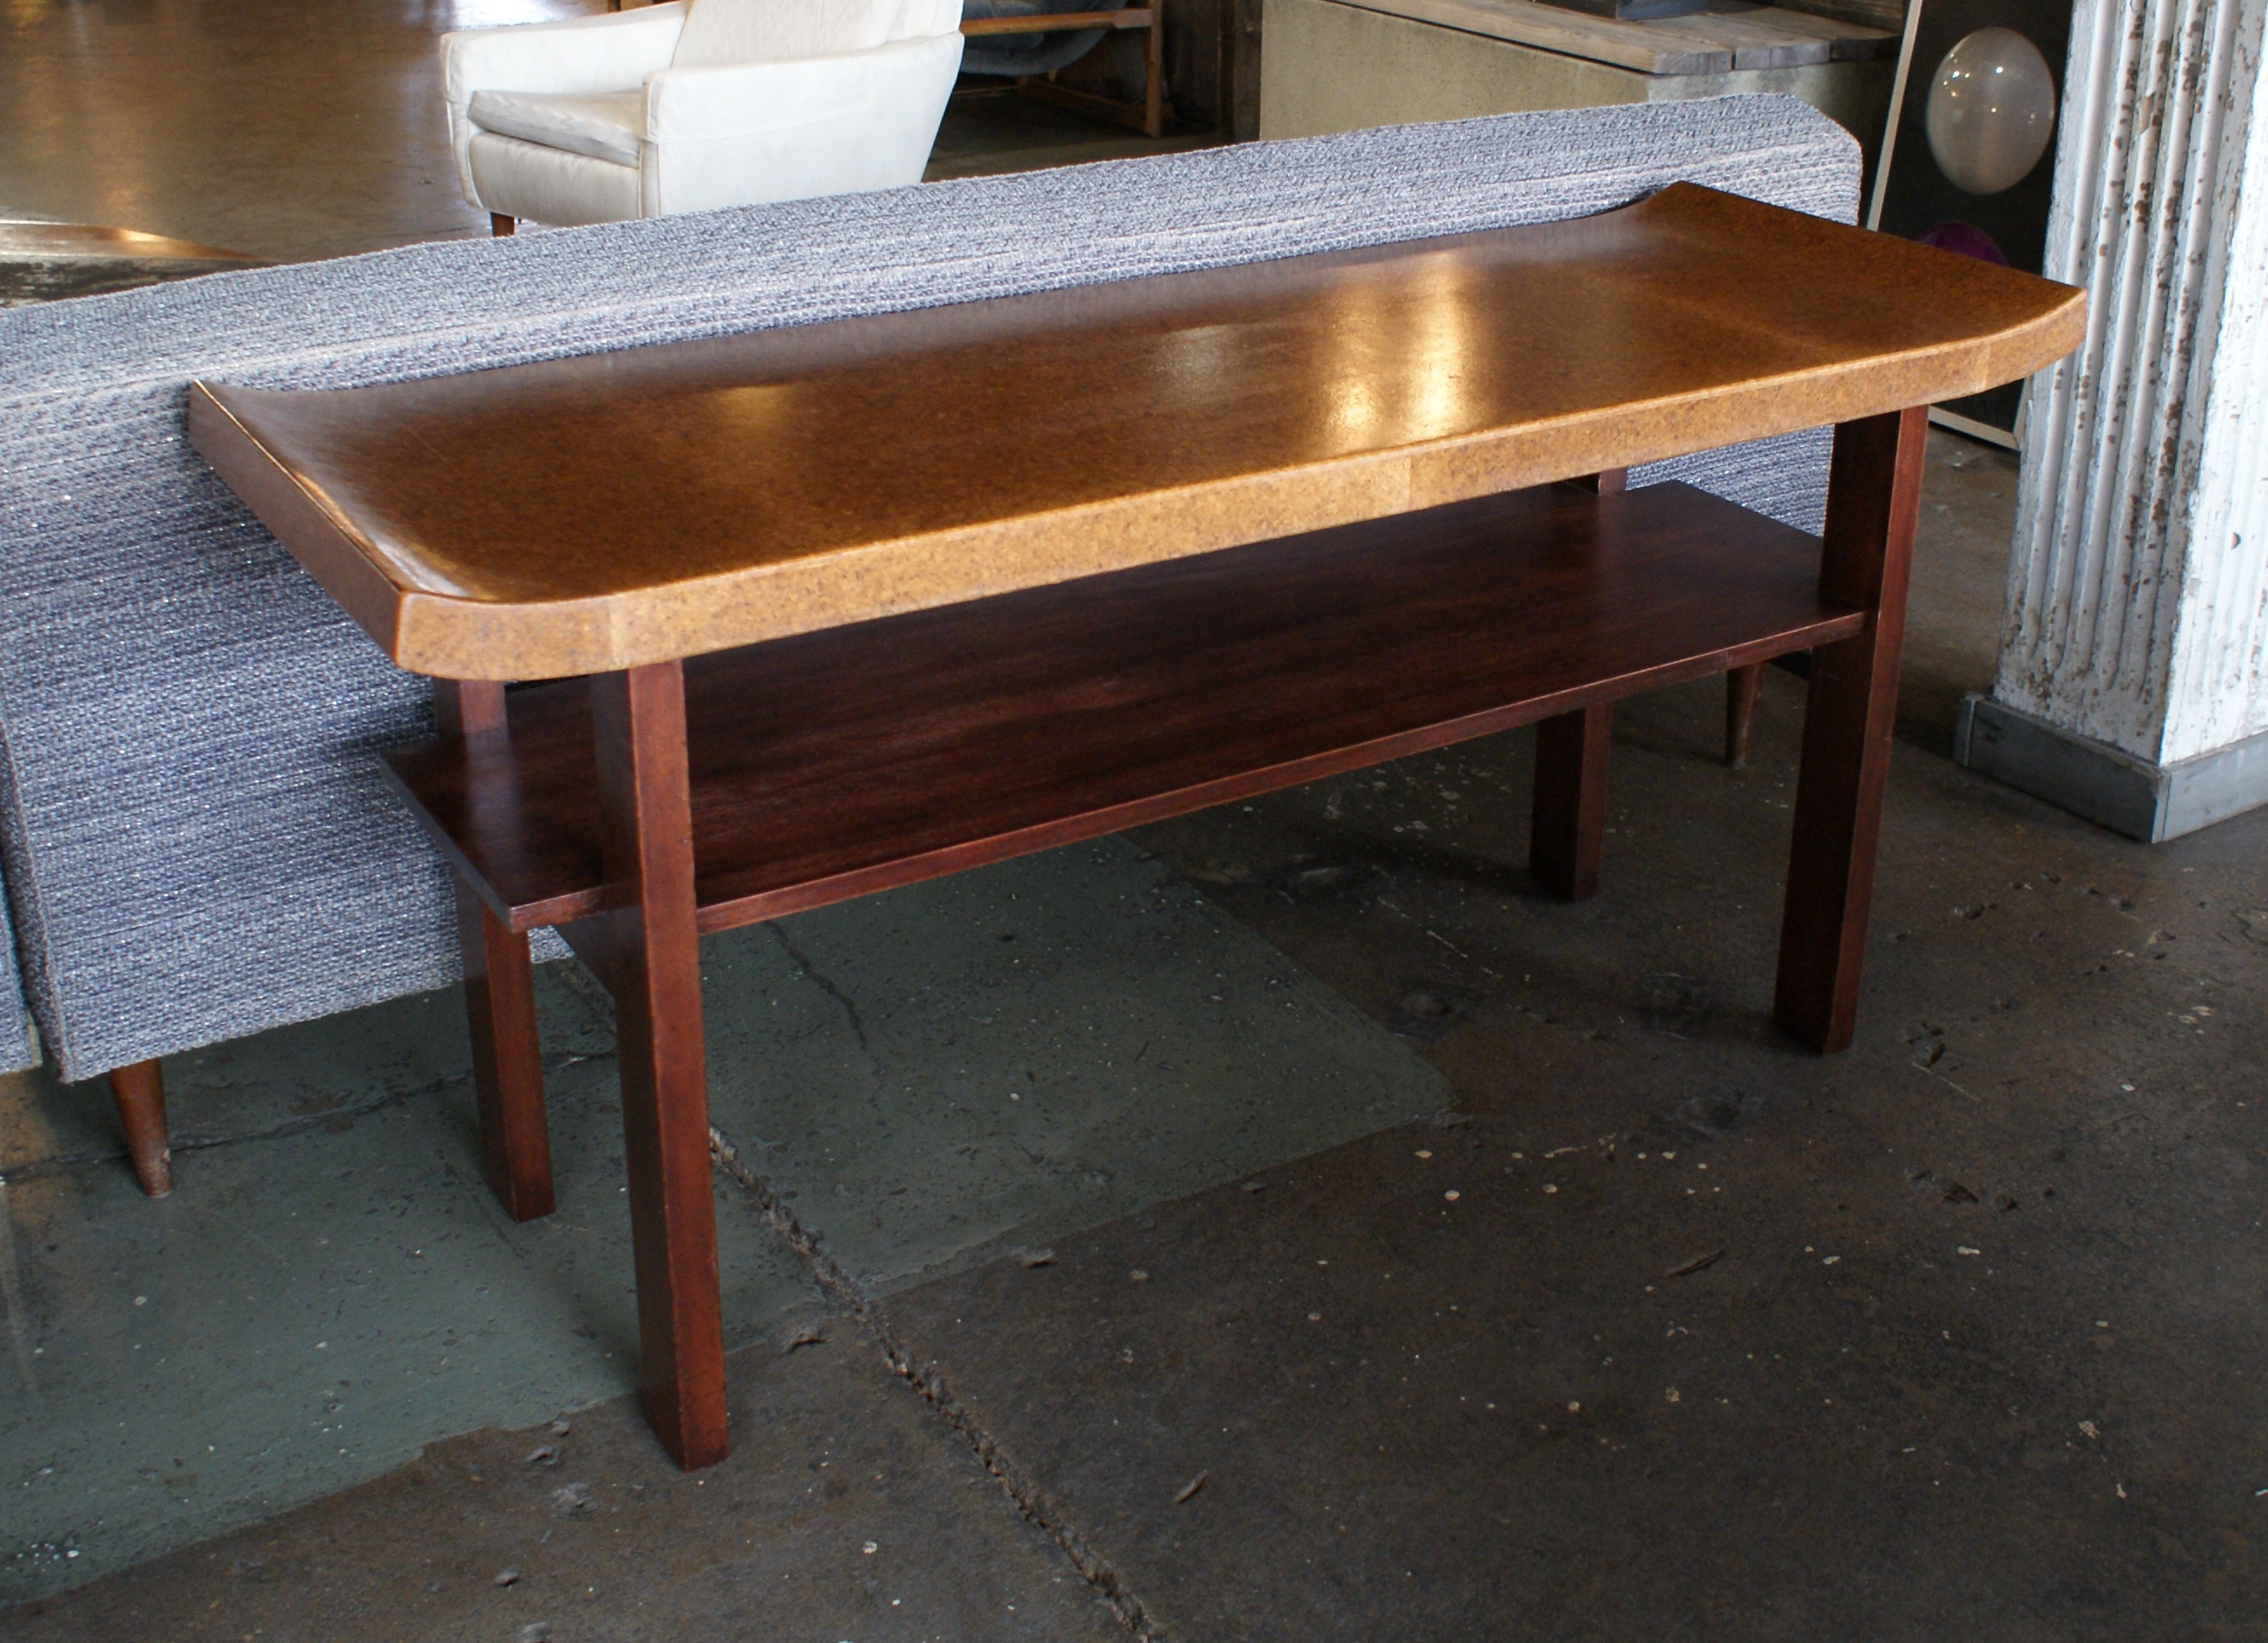 Home Furniture Tables Desks Refinished Cork Top Sofa Table By Paul Frankl